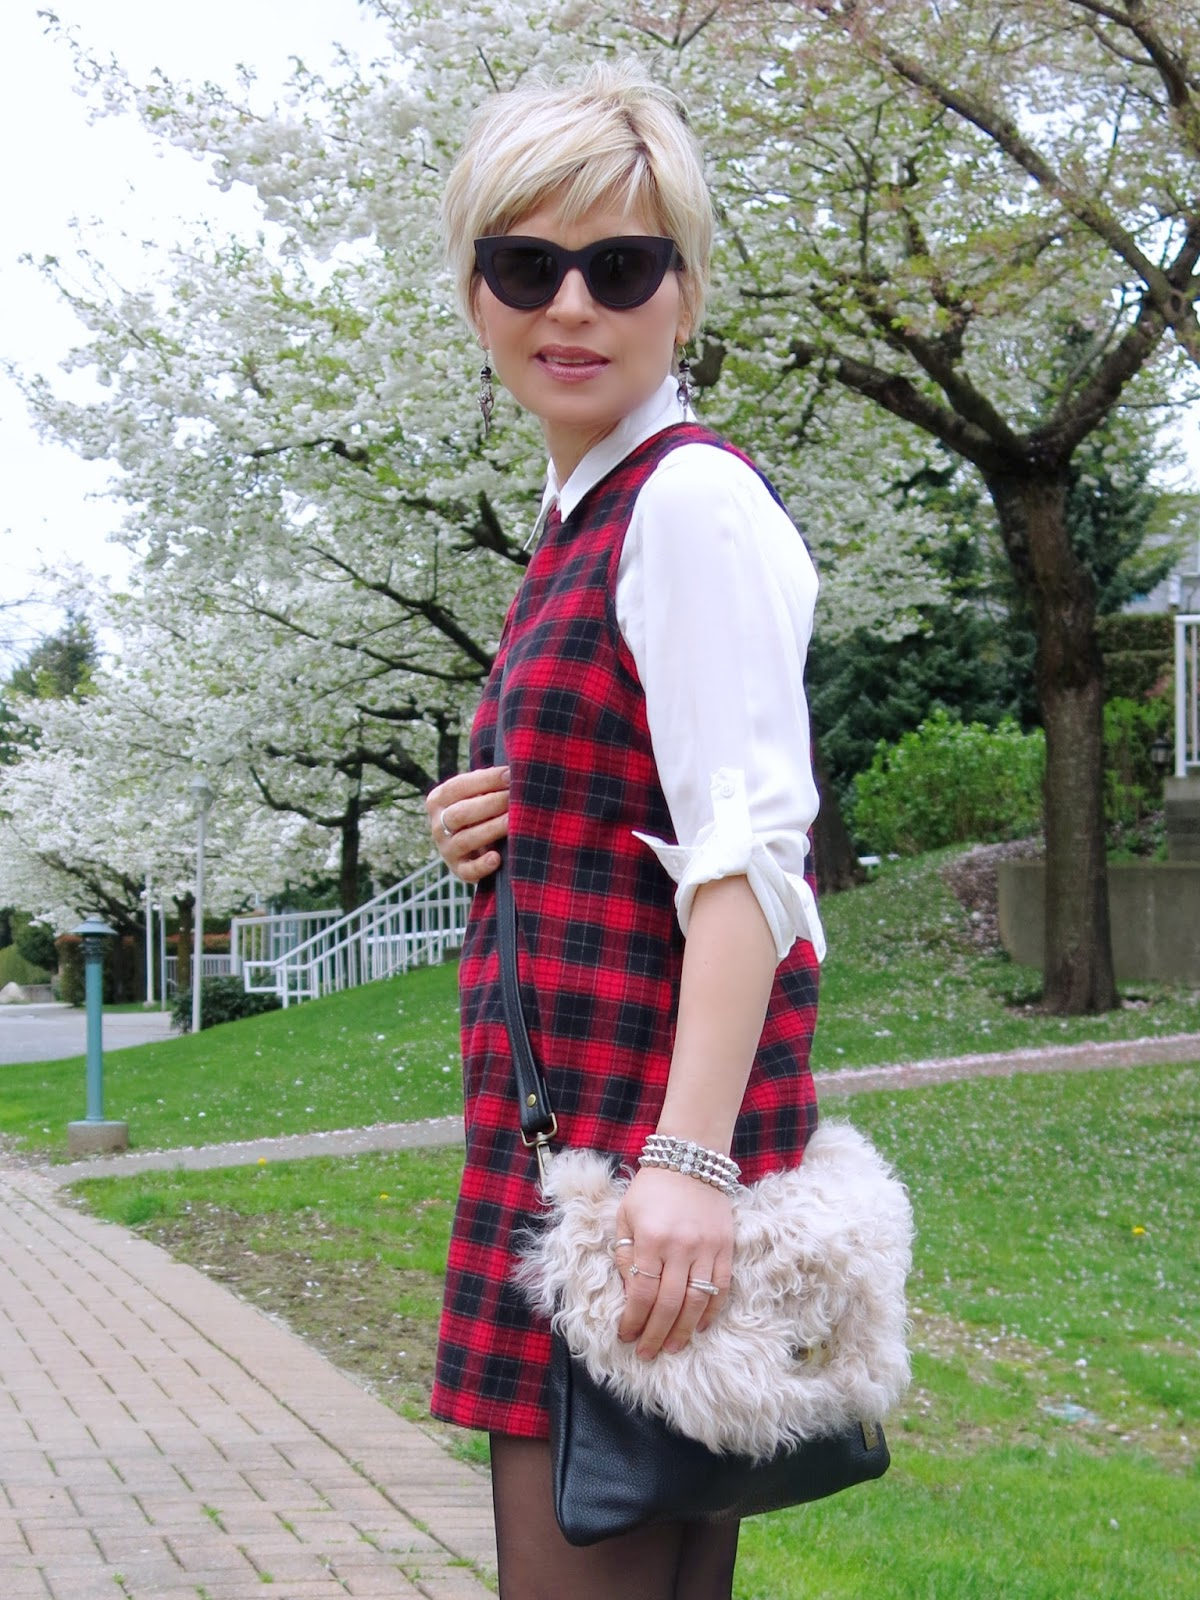 styling a white button-down shirt under a red plaid dress